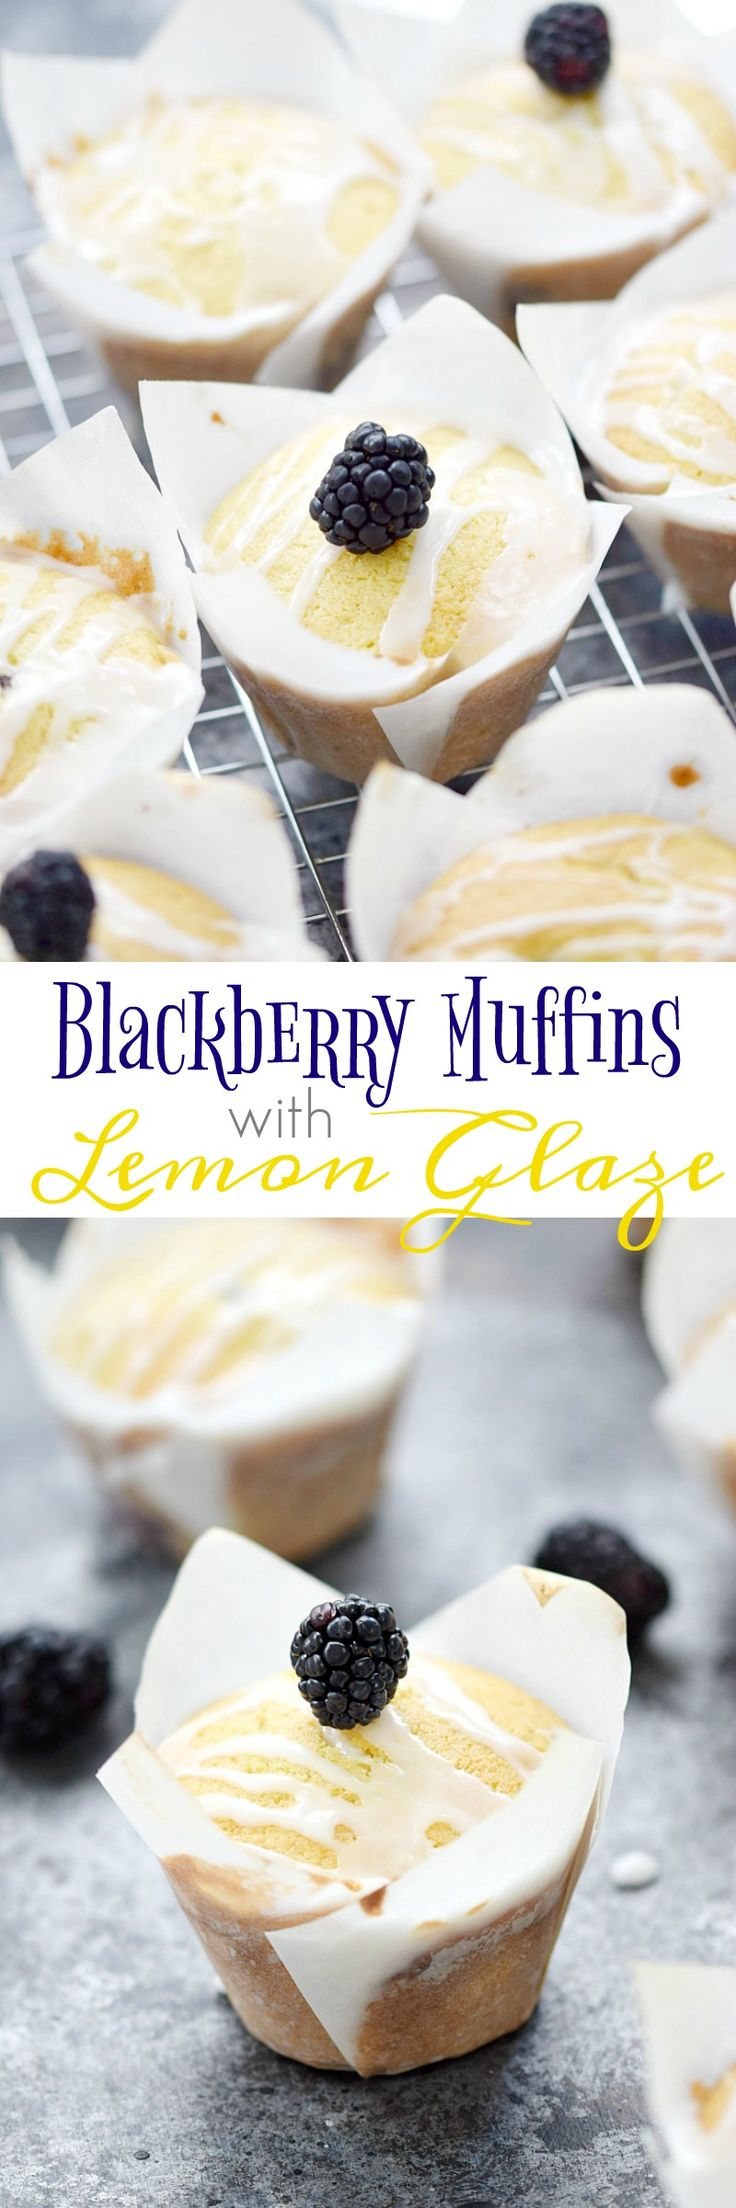 Bakery style muffins studded with blackberries and topped with a lemon glaze, make these Blackberry Muffins with Lemon Glaze a perfect breakfast treat | cookingwithcurls.com